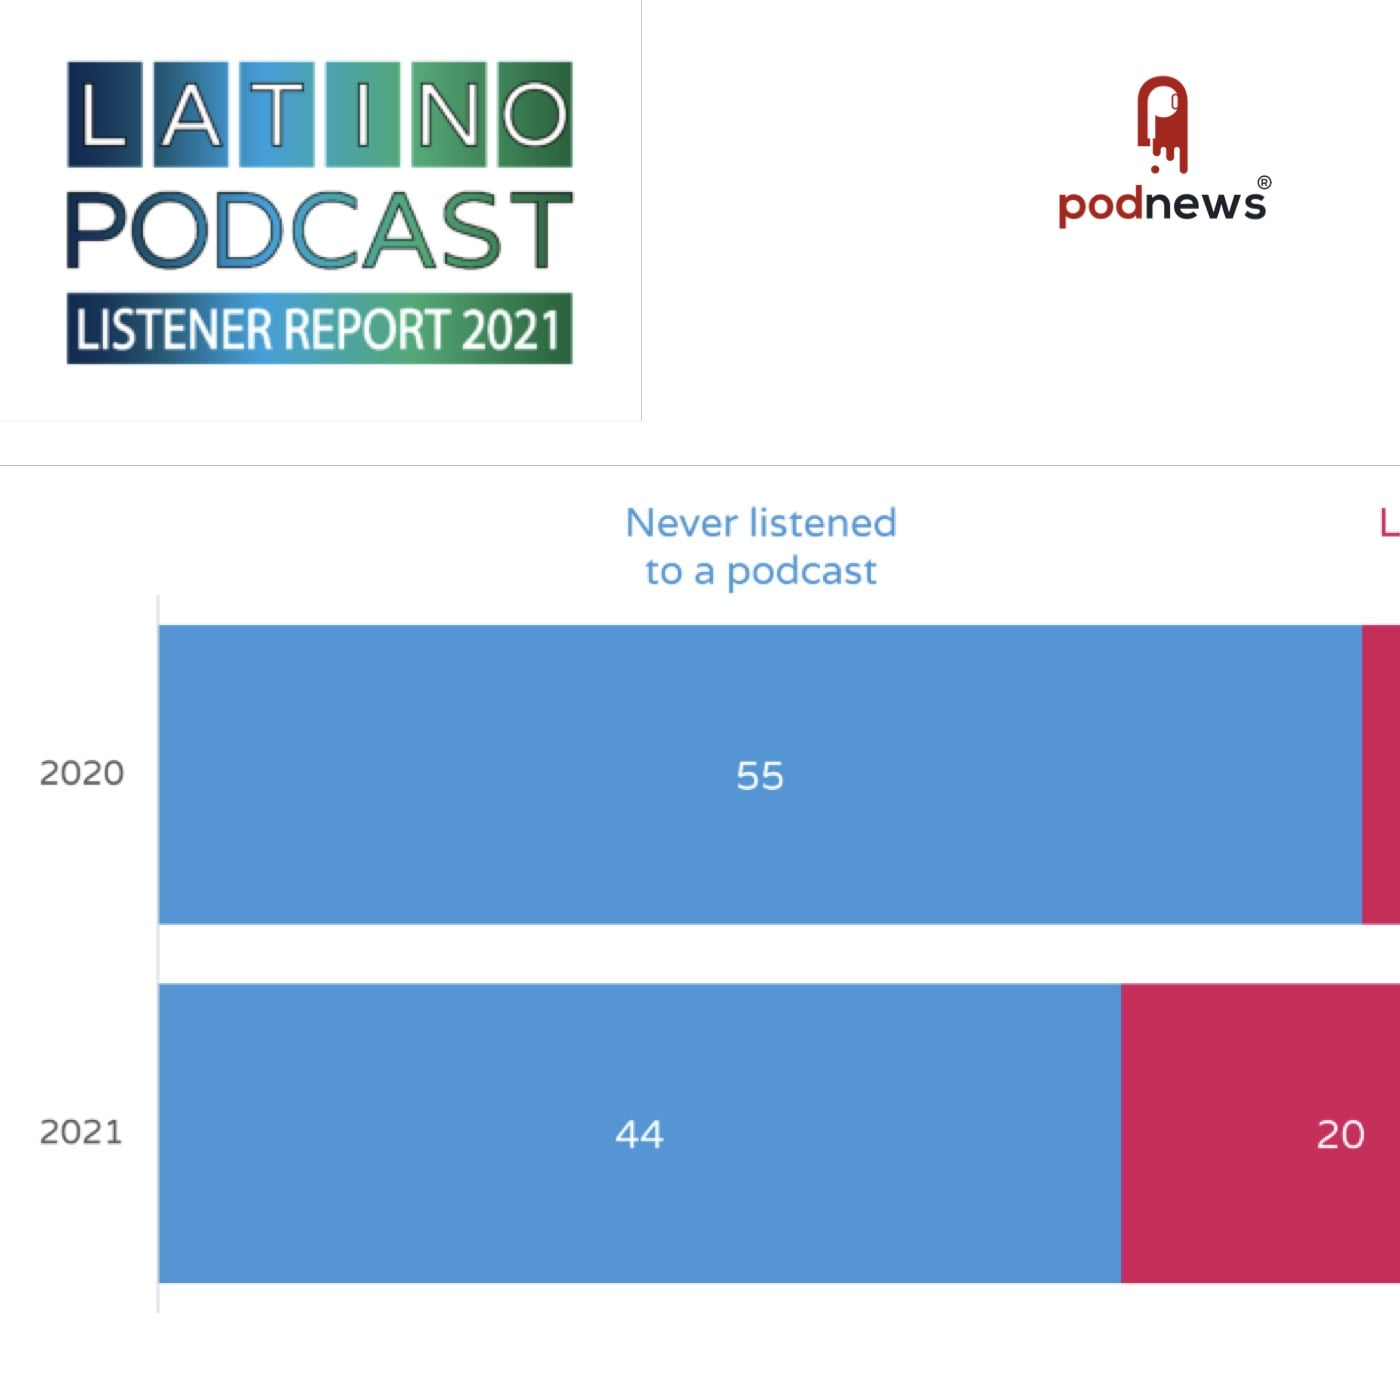 US Latinos - non-podcast listeners already listening to spoken word